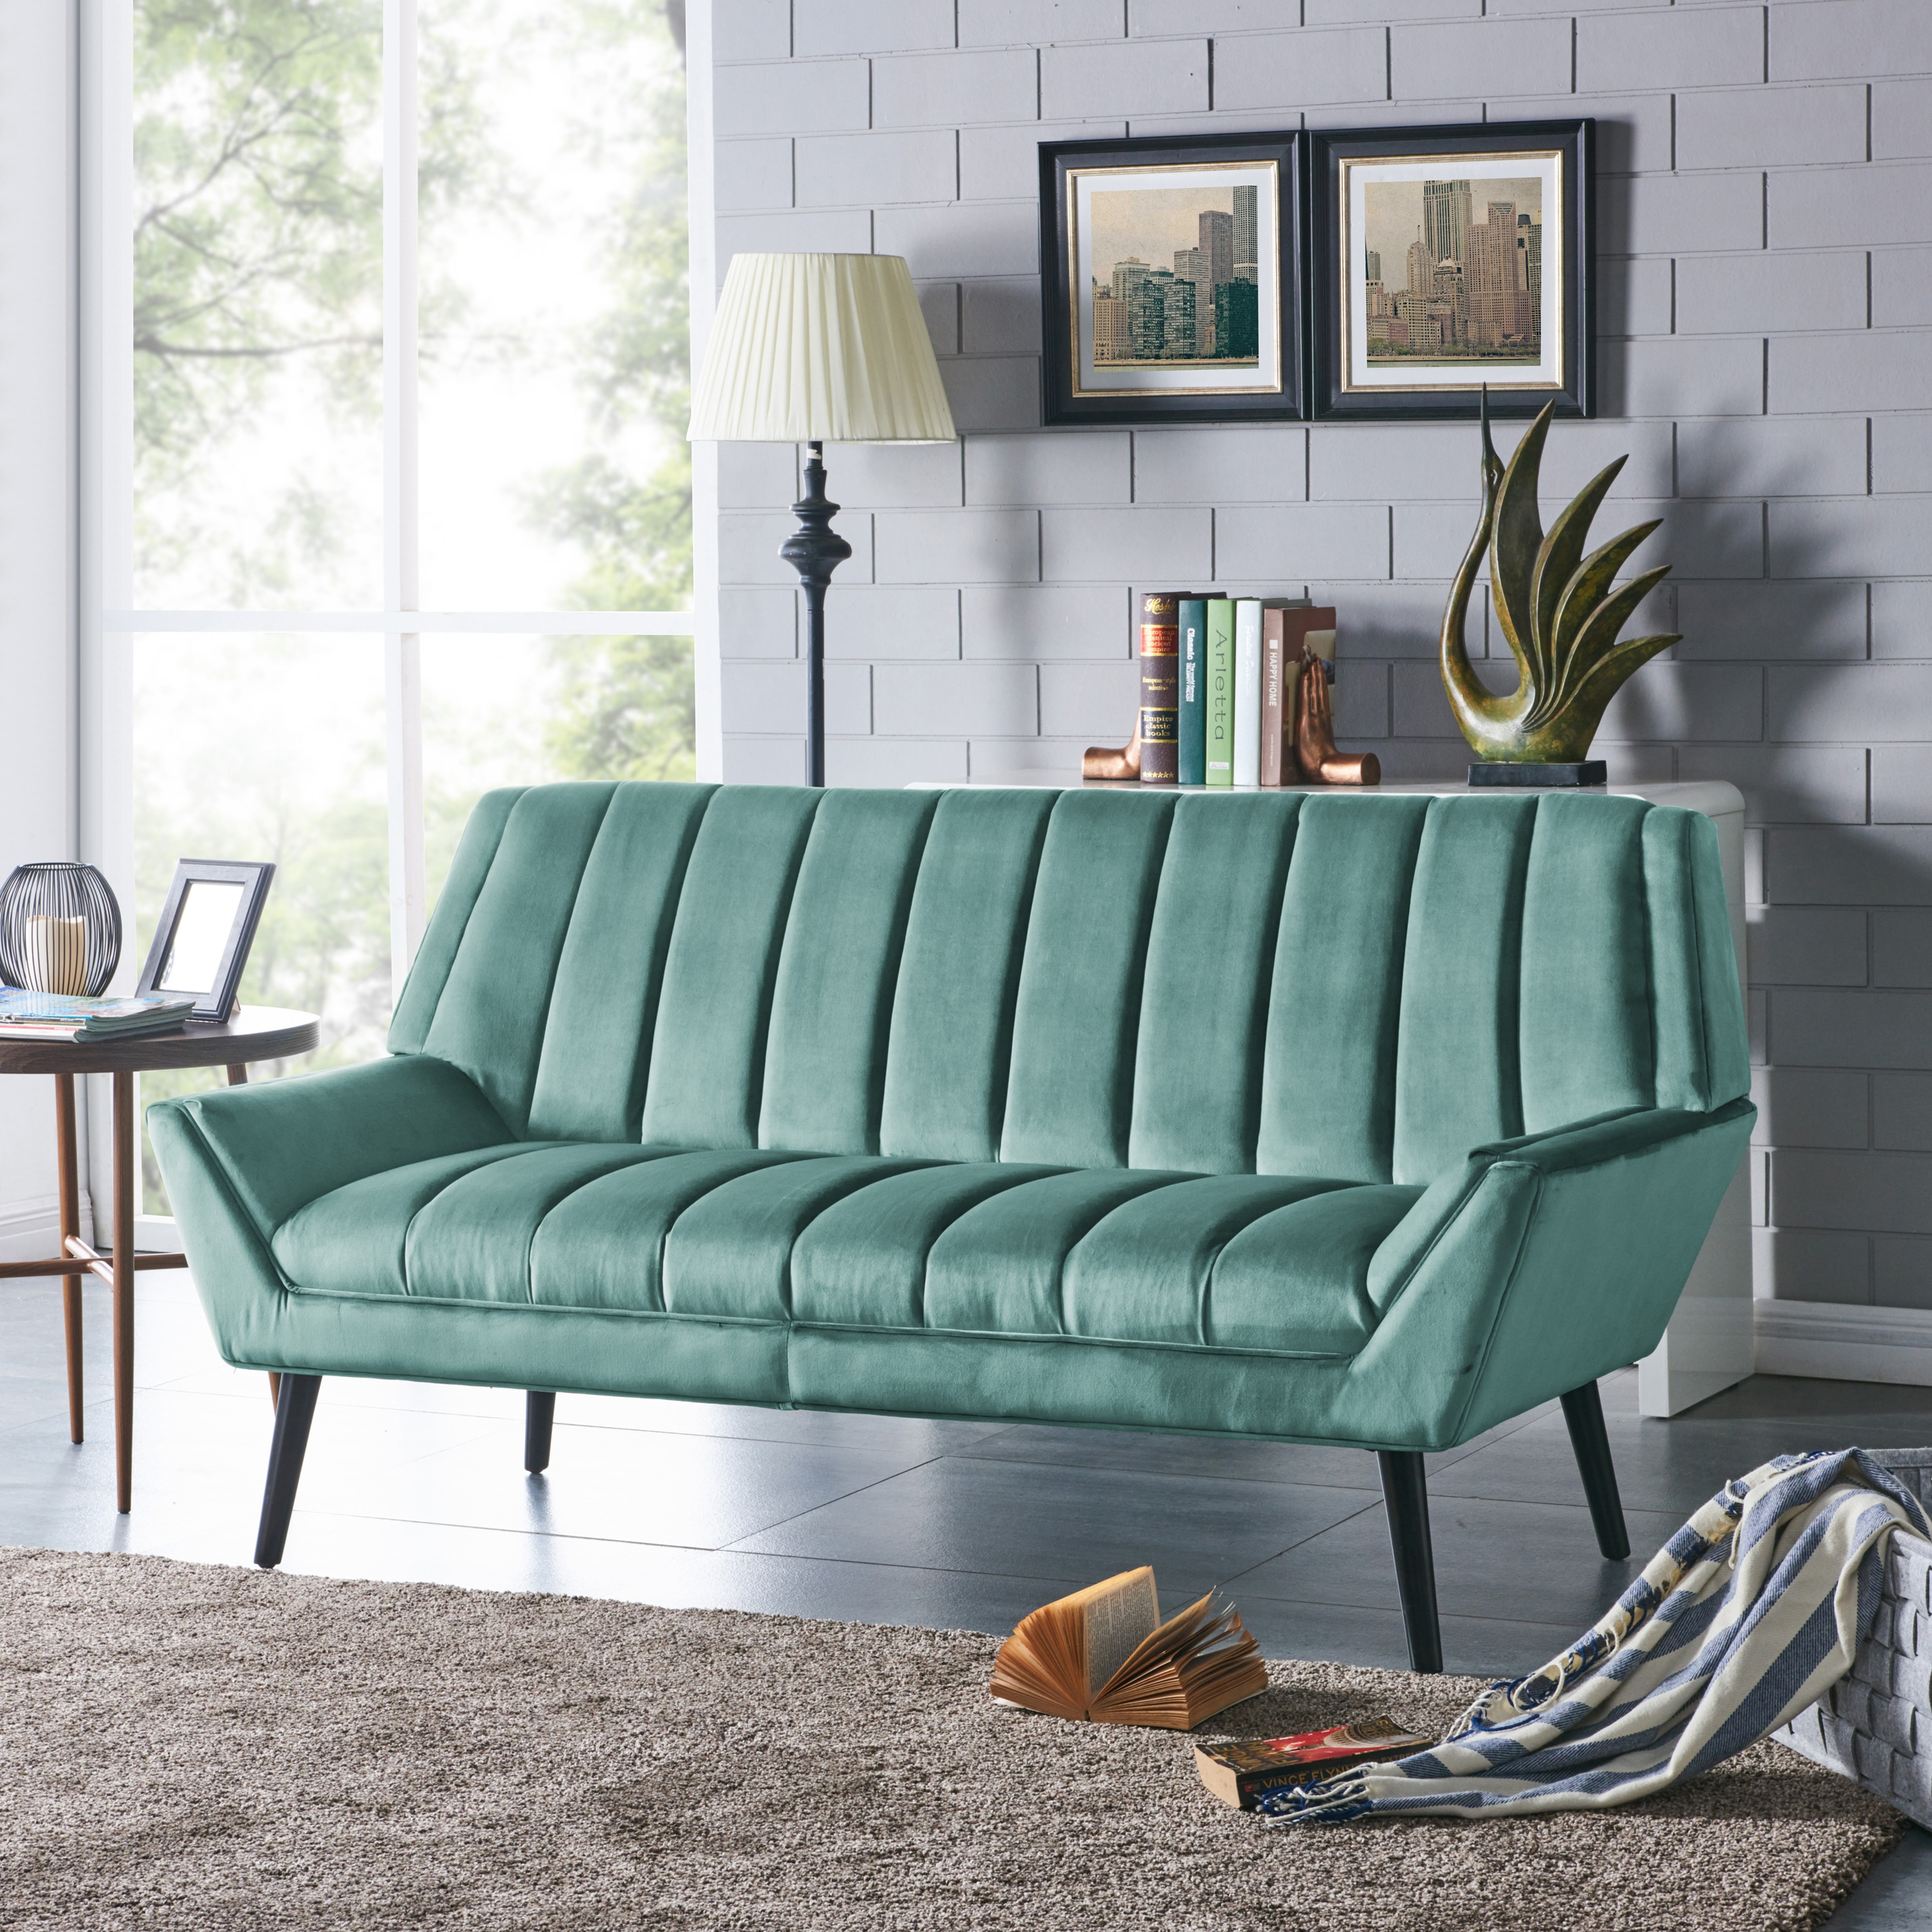 Sectional Sofa Sale Houston: Handy Living Houston Mid-Century Modern Turquoise Blue